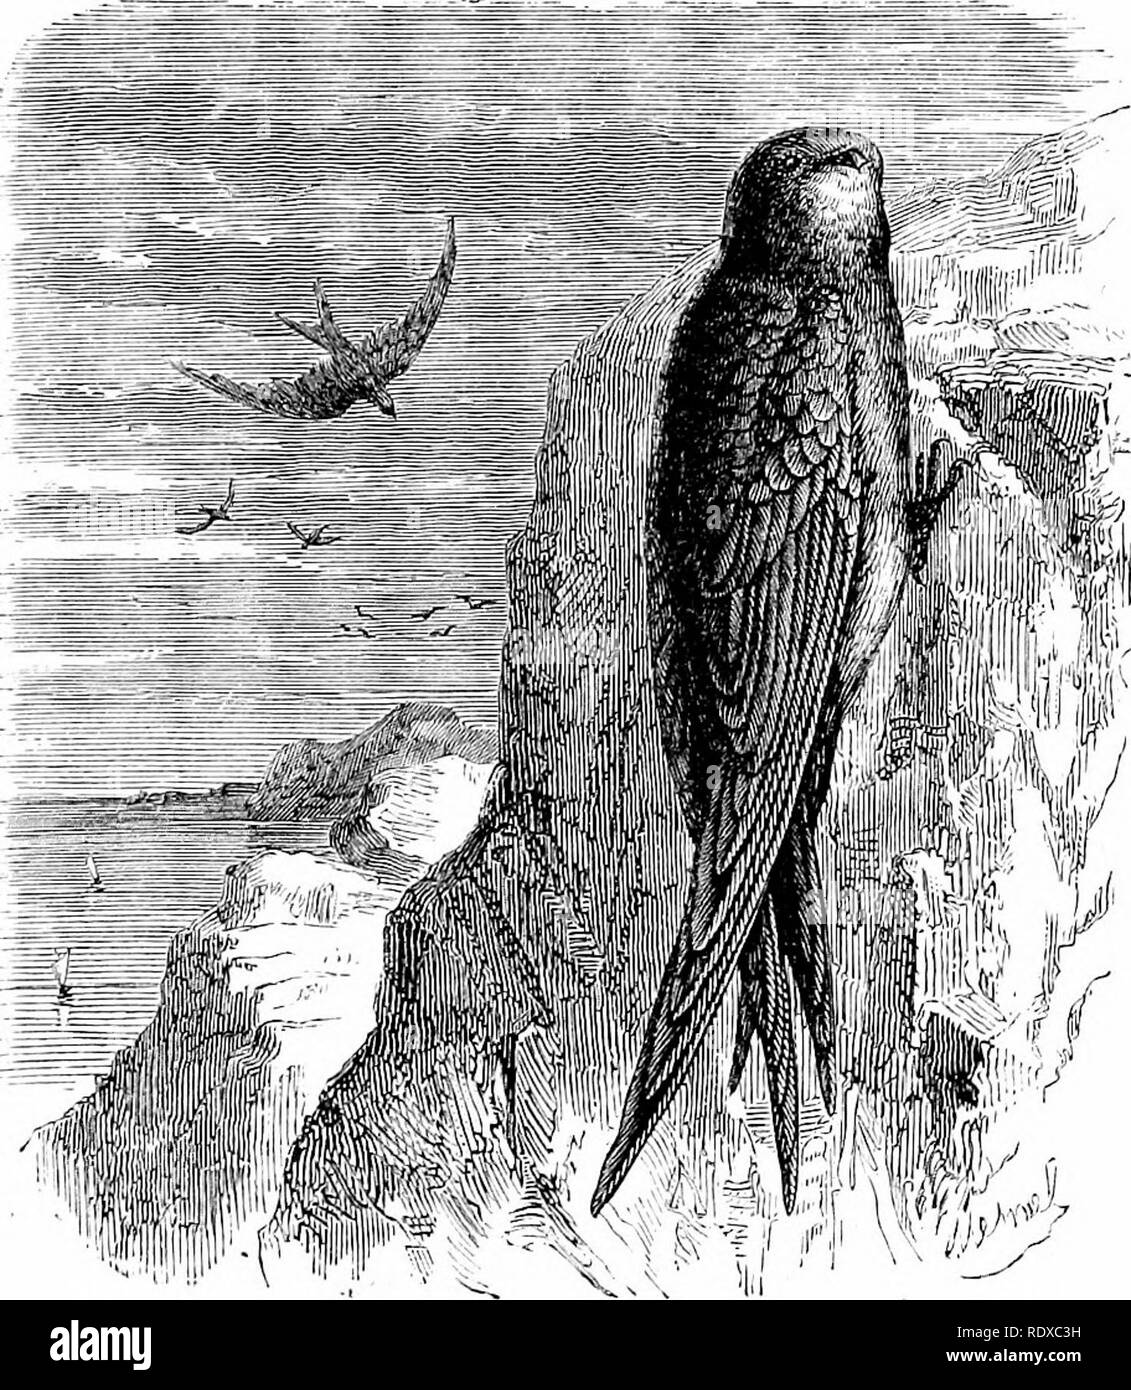 """. Reptiles and birds : a popular account of their various orders : with a description of the habits and economy of the most interesting . Birds; Reptiles. SALANGANE SWALLOW. 537 their powers of fliglit are greater and their speed more sustained; their claws are more robust and hooked. The principal species we have already named. It is only neces- sary to mention the Clitf Swallow (Fig. 241), the Chimney Martin, the Bank Martin, and the Alpine Swift {Cypselus, alpinus), Fig. 242. Among the foreign species the Salangane Swallow (Fig. 243). F"""" 1 —Tl Uj b ^H,C!/p IS mclba, Yooi). may be mentioned - Stock Image"""